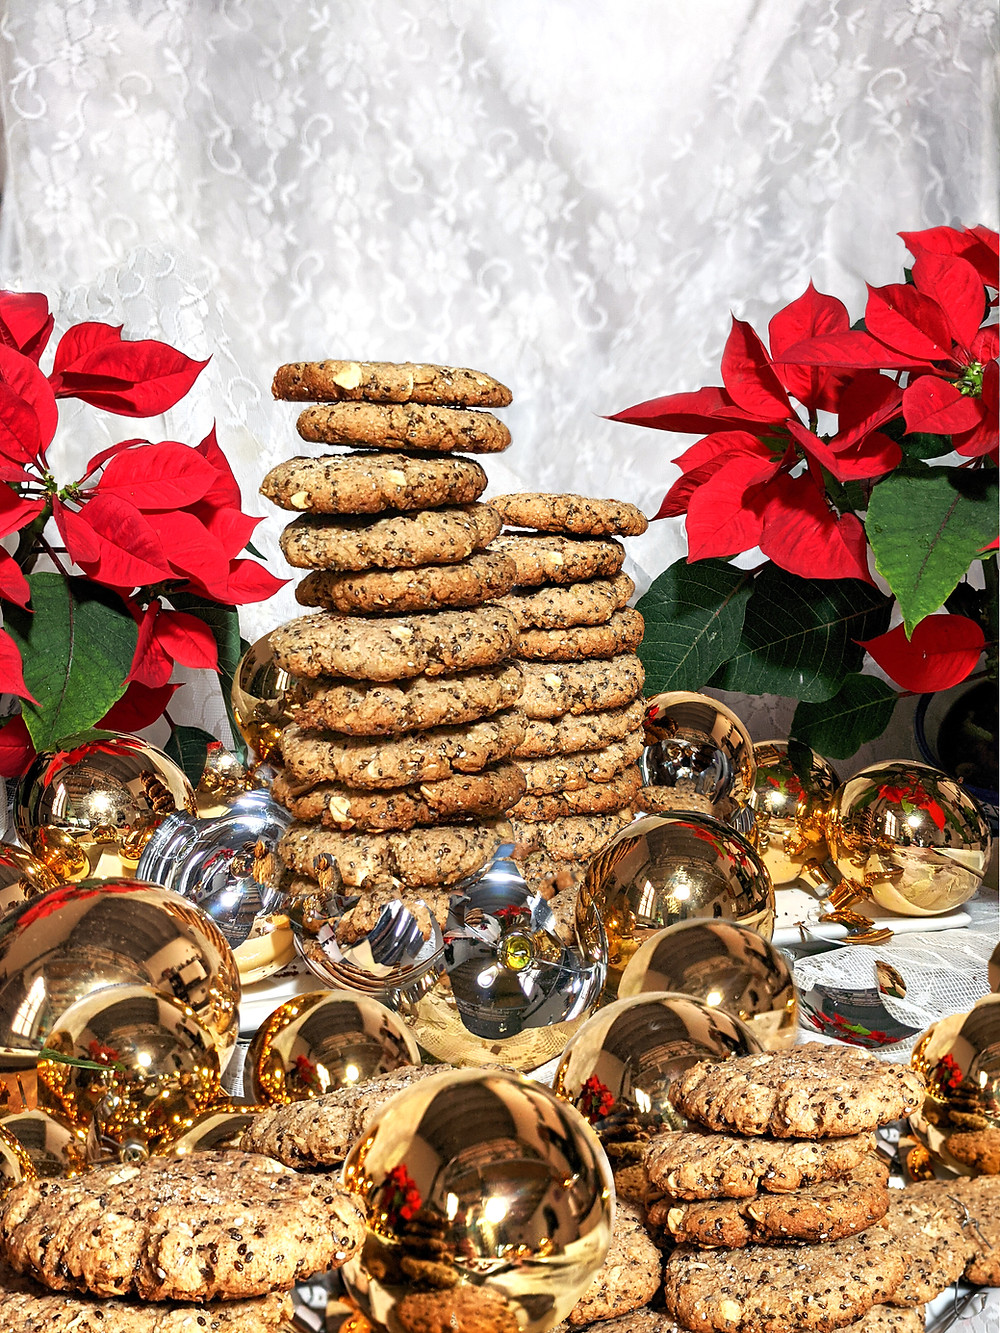 An unbelievable amount of cookies stacked in towers between red poinsettias and golden shards of fallen Christmas tree ornaments.